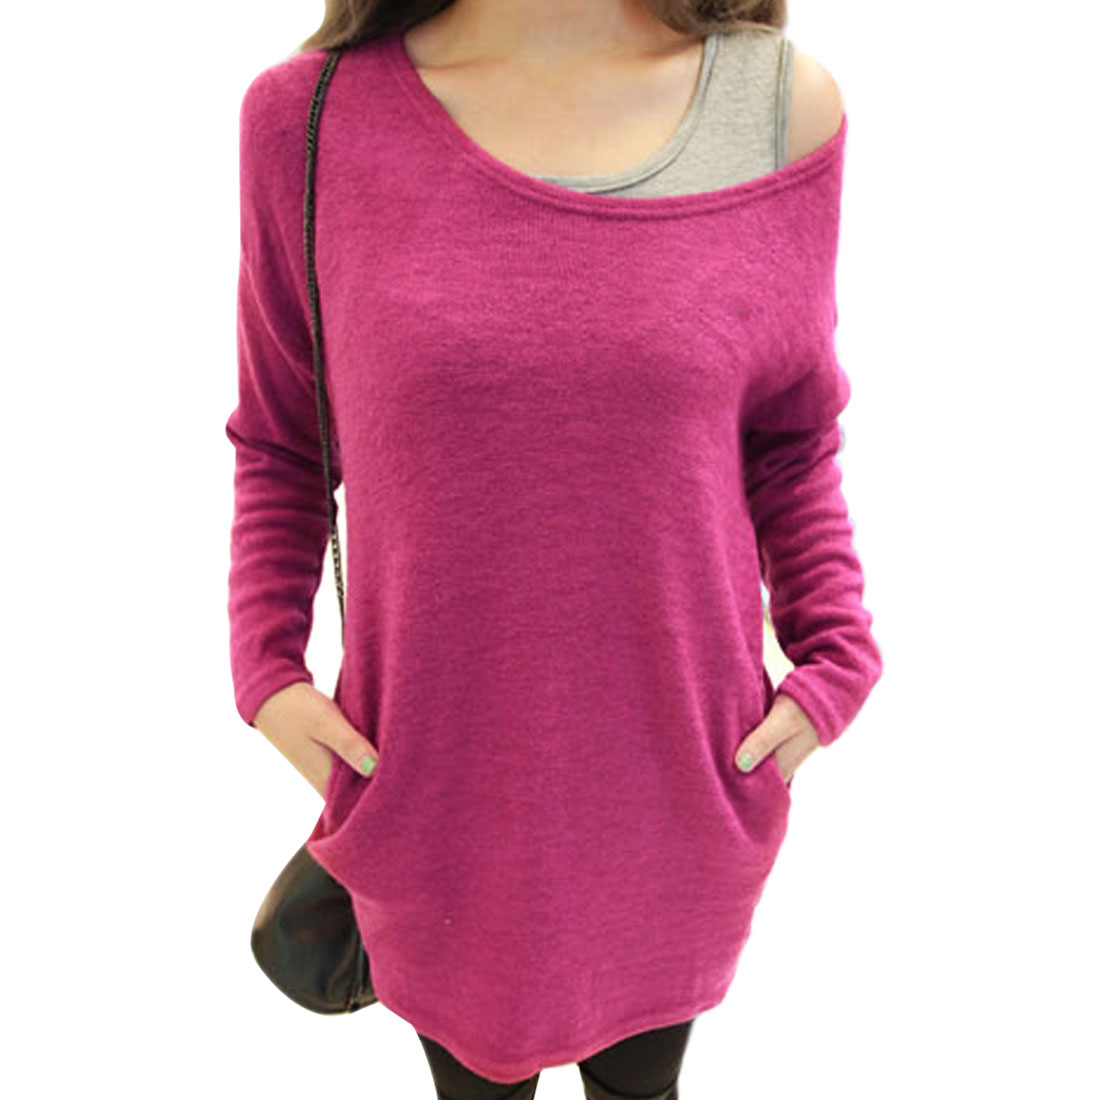 Lady Scoop Neck Long-sleeved Two Side Pockets Decor Fuchsia Knit Shirt S